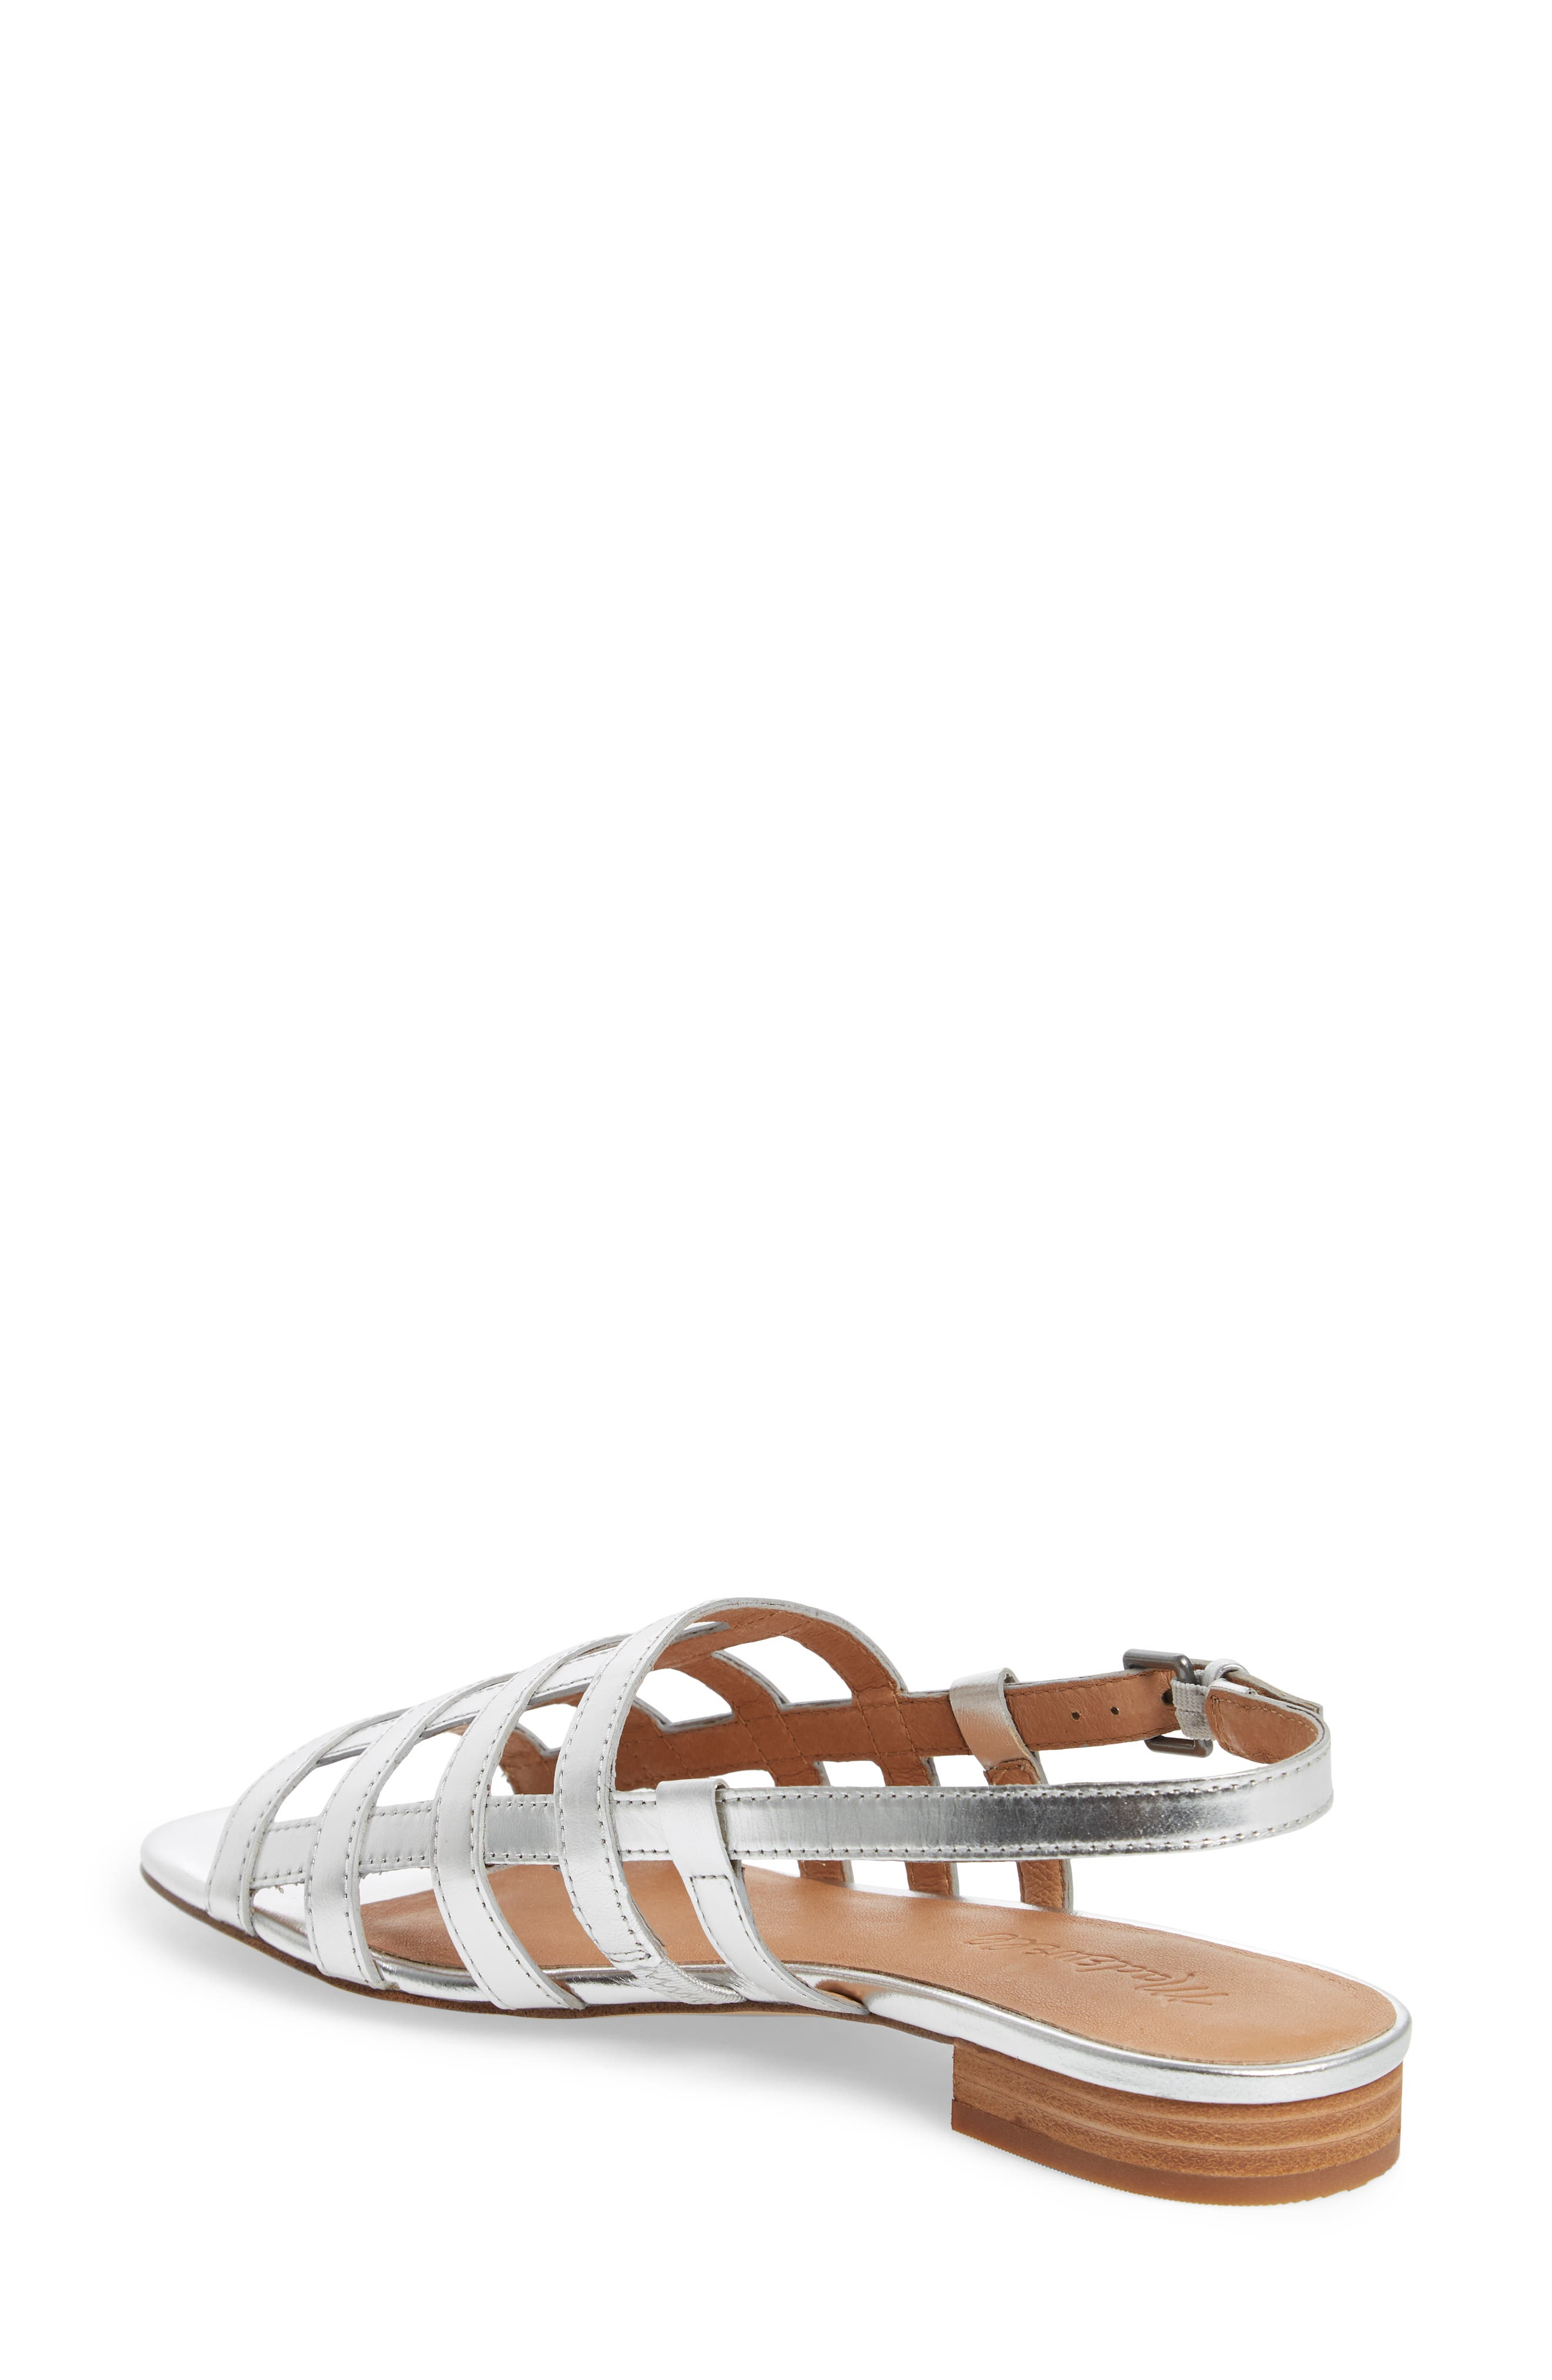 Rowan Cage Sandal,                             Alternate thumbnail 2, color,                             Silver Metallic Leather